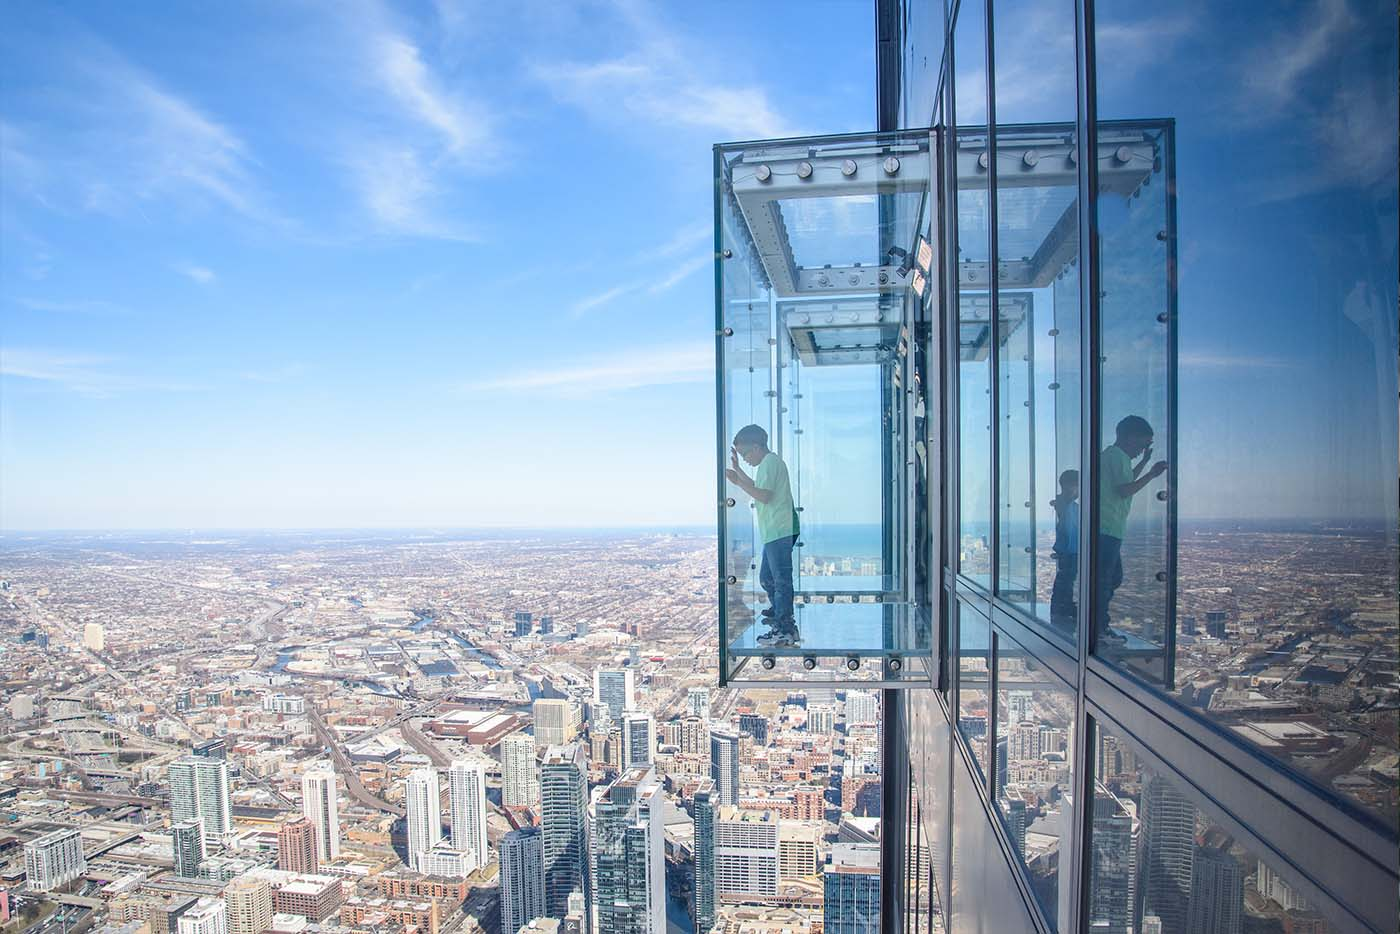 A child standing on the Chicago Skydeck